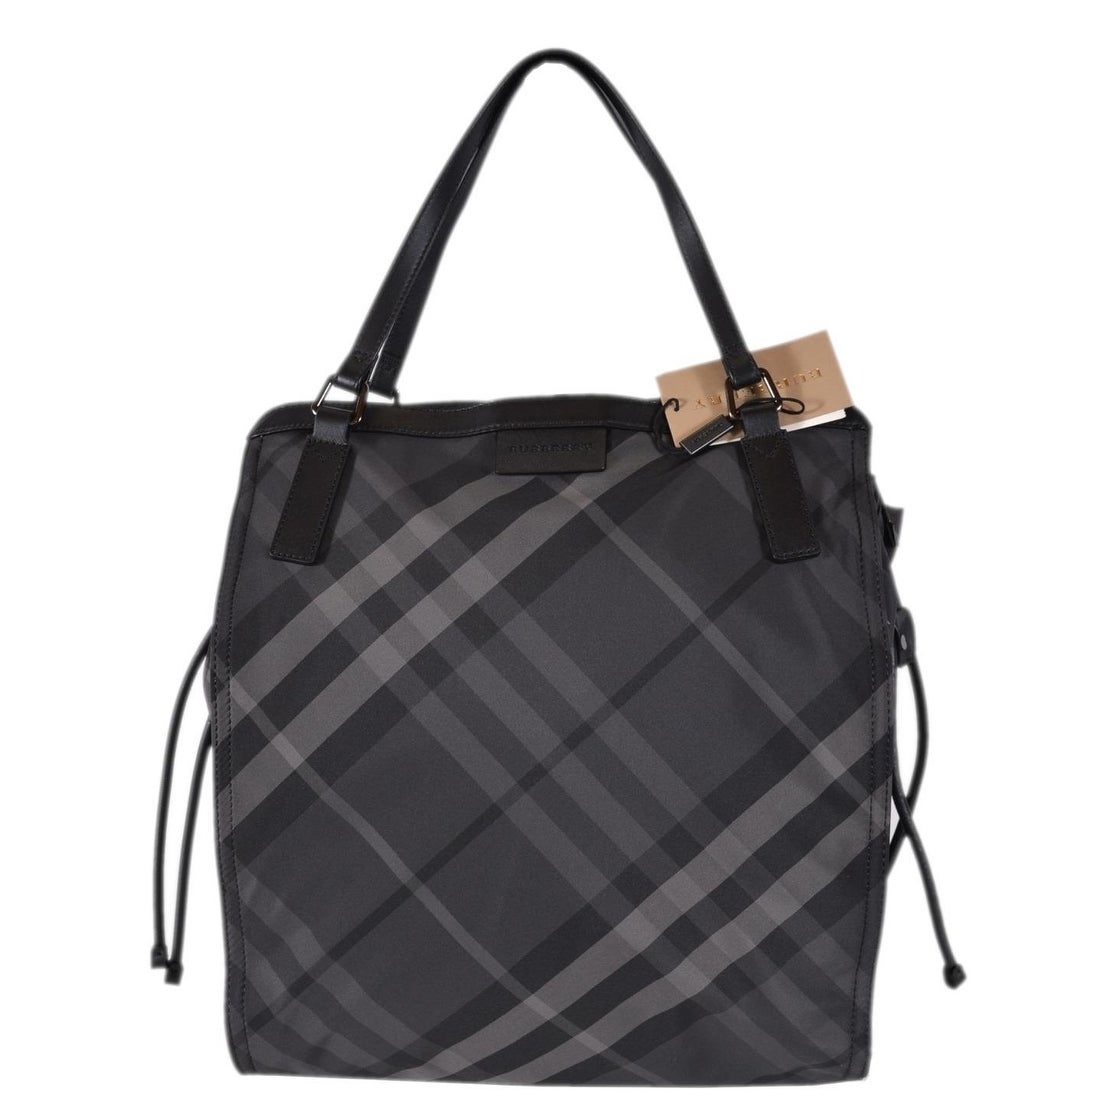 aff7275215 Shop Burberry Grey Nylon Nova Check Packable Purse Bag Tote Shopper - Black  - Free Shipping Today - Overstock - 24267415